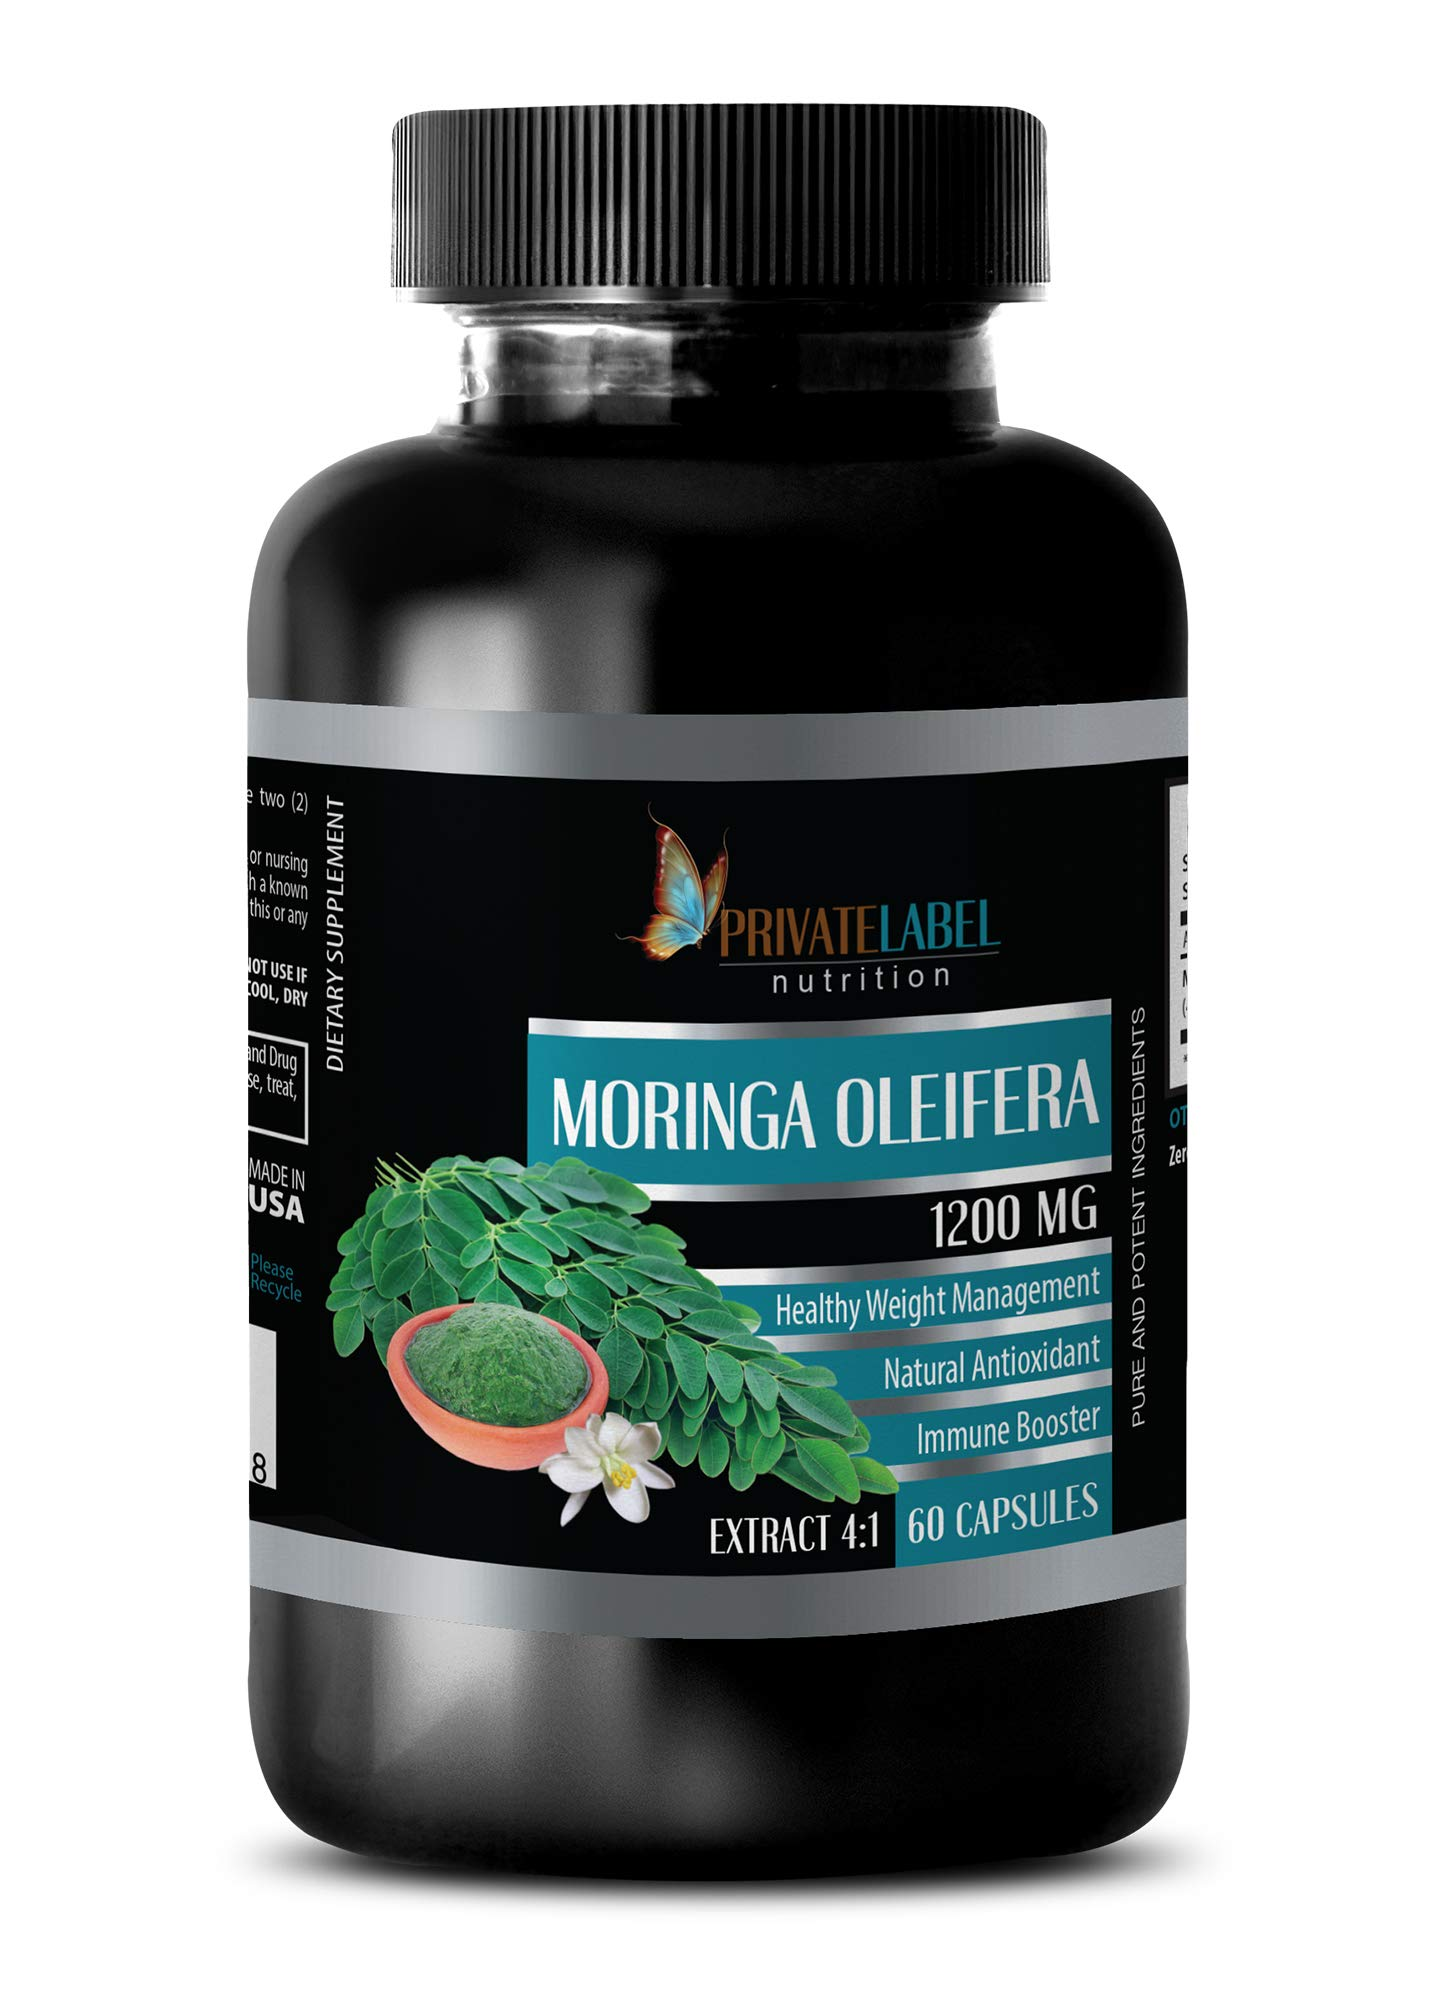 Brain and Memory Power Boost - Moringa OLEIFERA Extract 4:1 1200MG - Moringa Green Energy - 1 Bottle (60 Capsules) by PRIVATE LABEL LLC